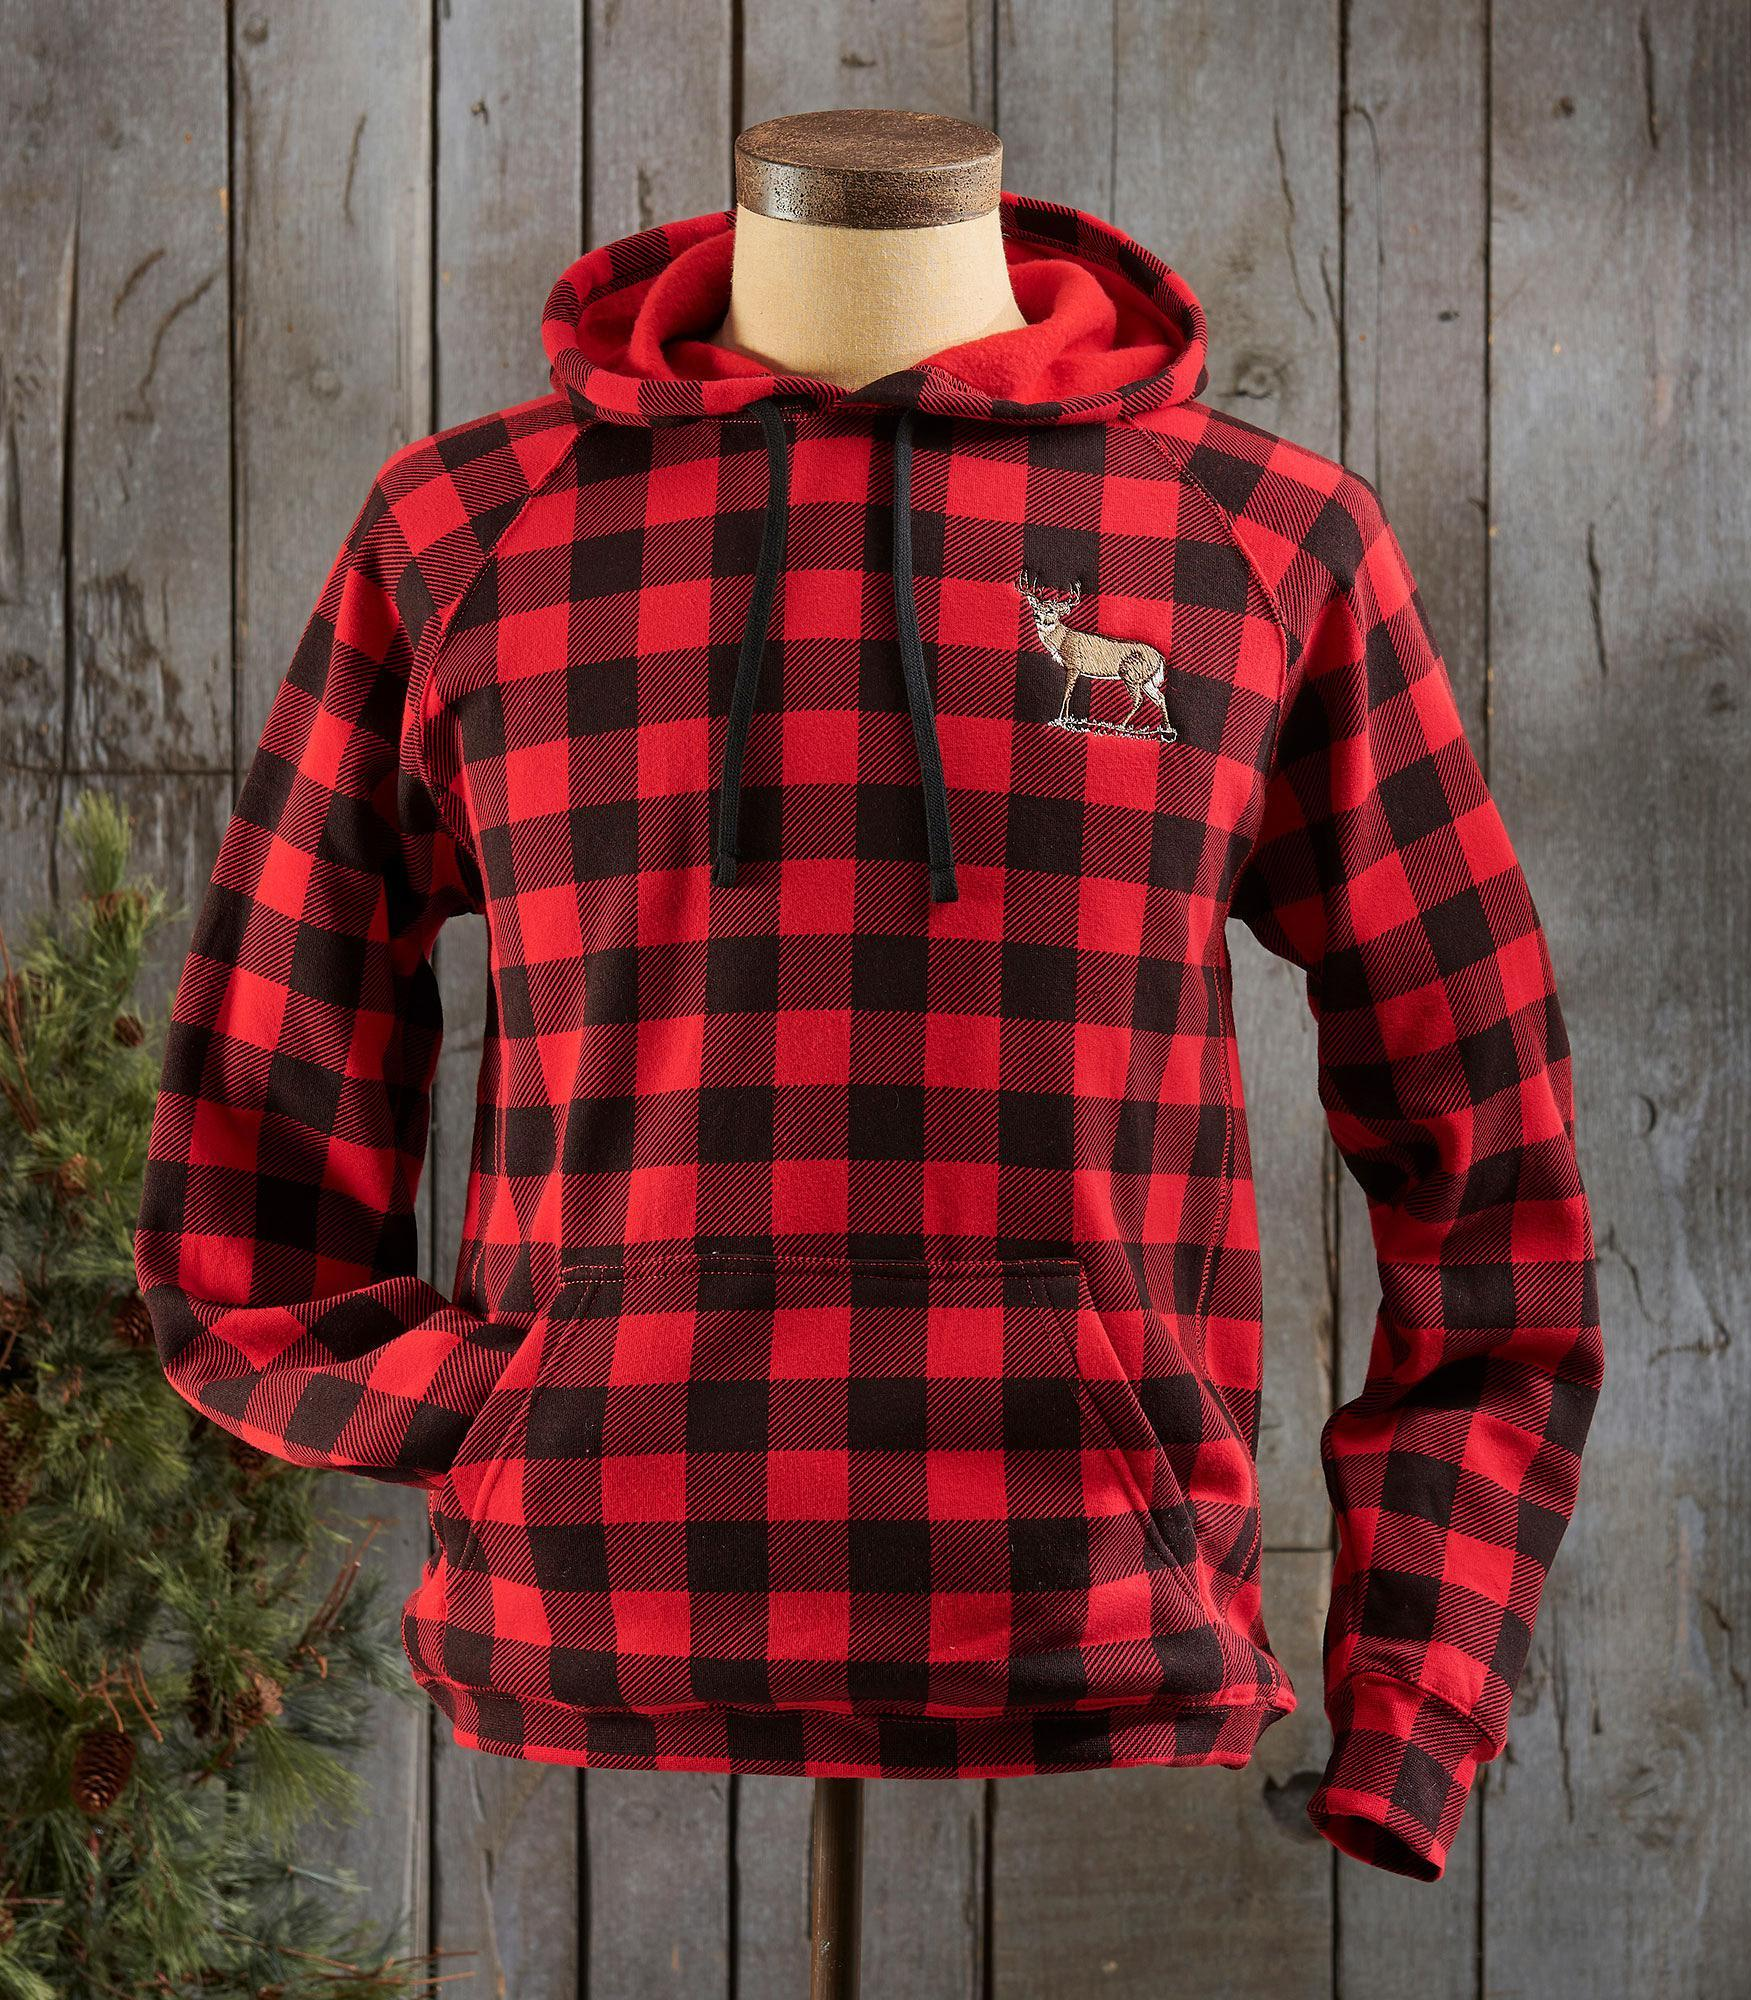 Red Plaid Whitetail Deer Hooded Sweatshirt